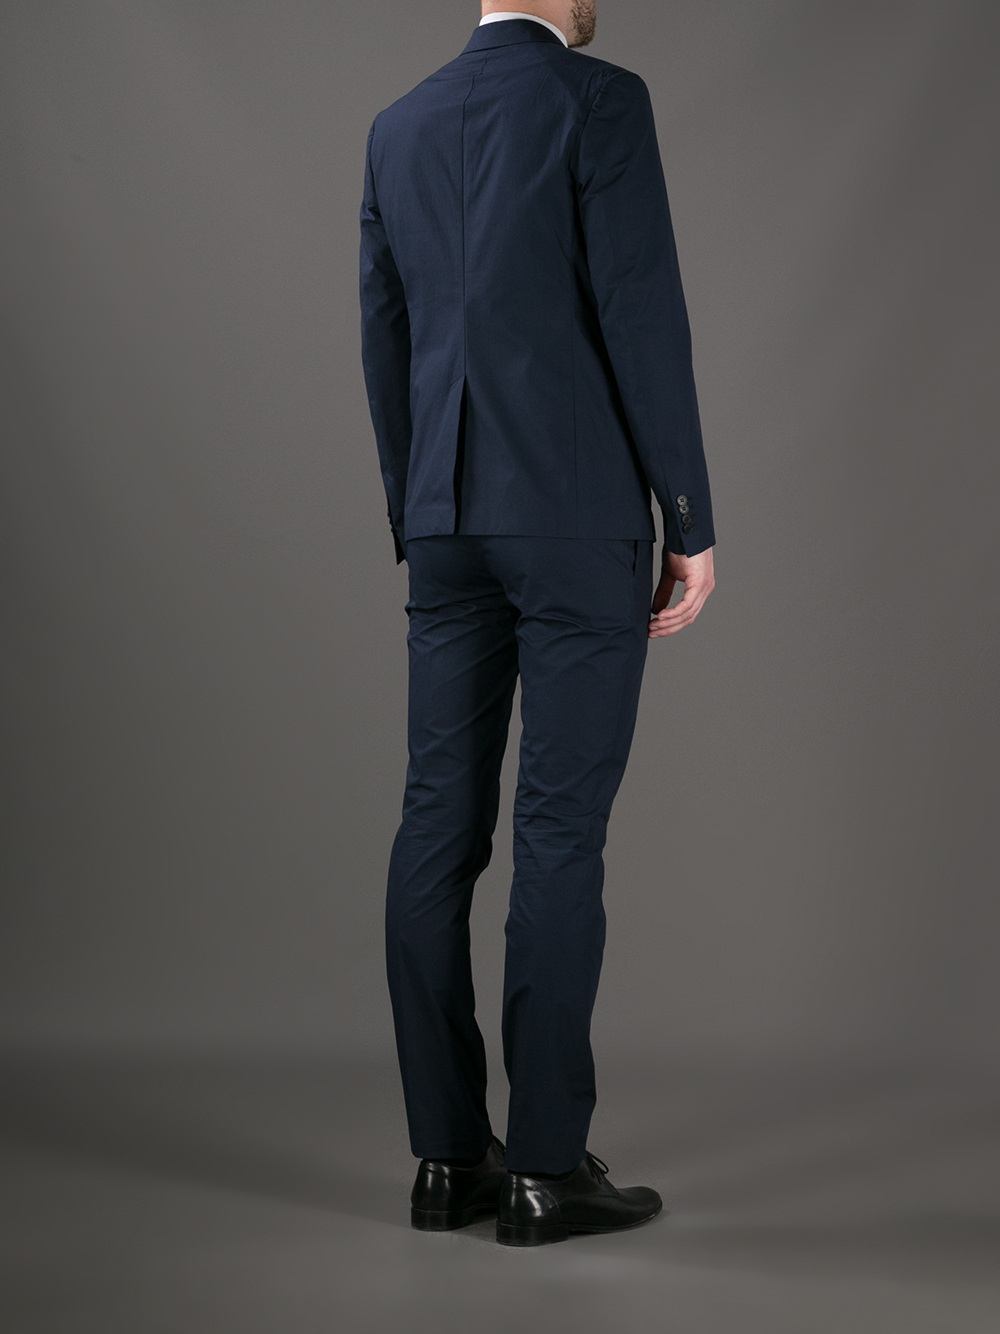 lyst valentino two button suit in blue for men